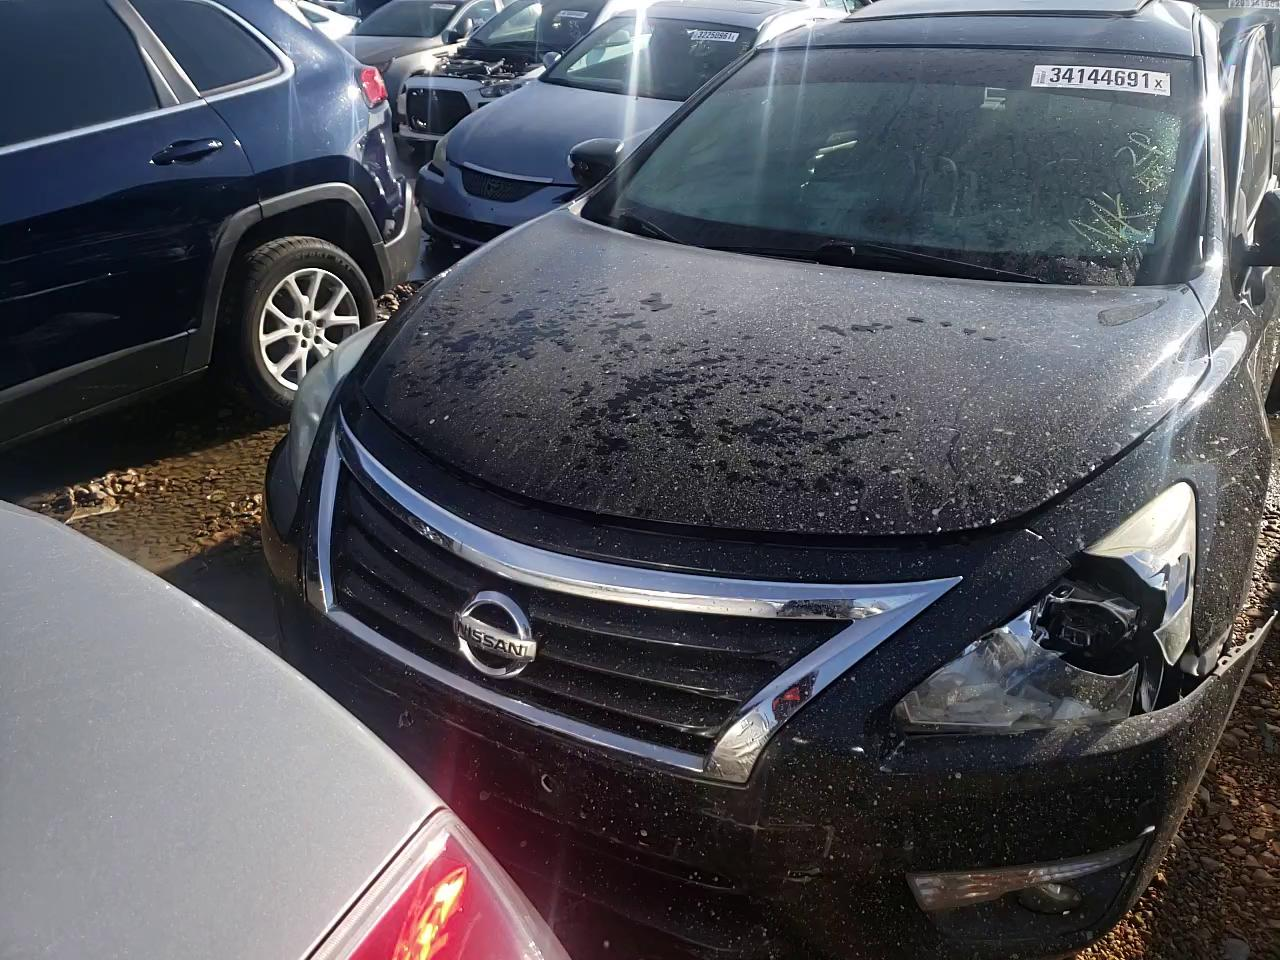 2013 NISSAN ALTIMA 2.5 - Other View